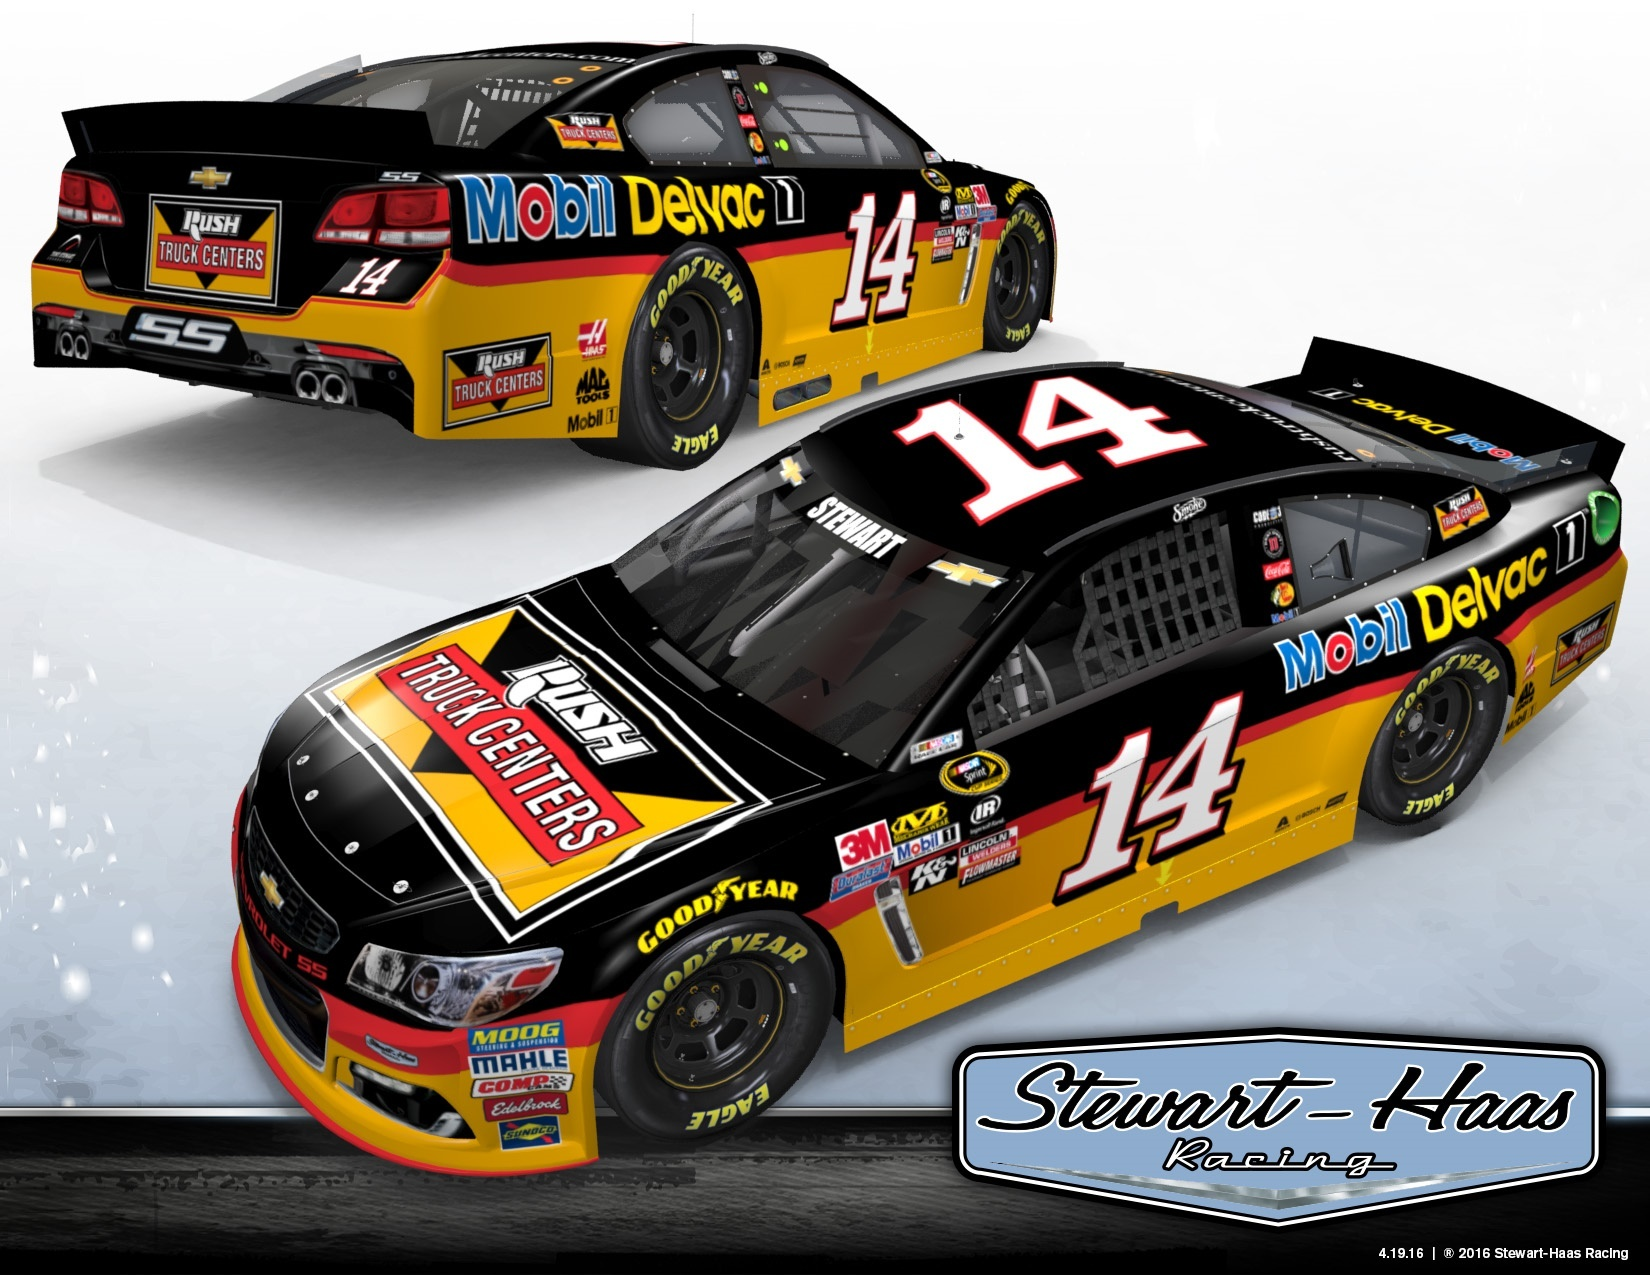 Second consecutive year of Tony Stewart's No. 14 Chevrolet featuring Rush Truck Centers on hood and Mobil Delvac 1 on the rear quarter panel and deck lid (Photo: Business Wire)